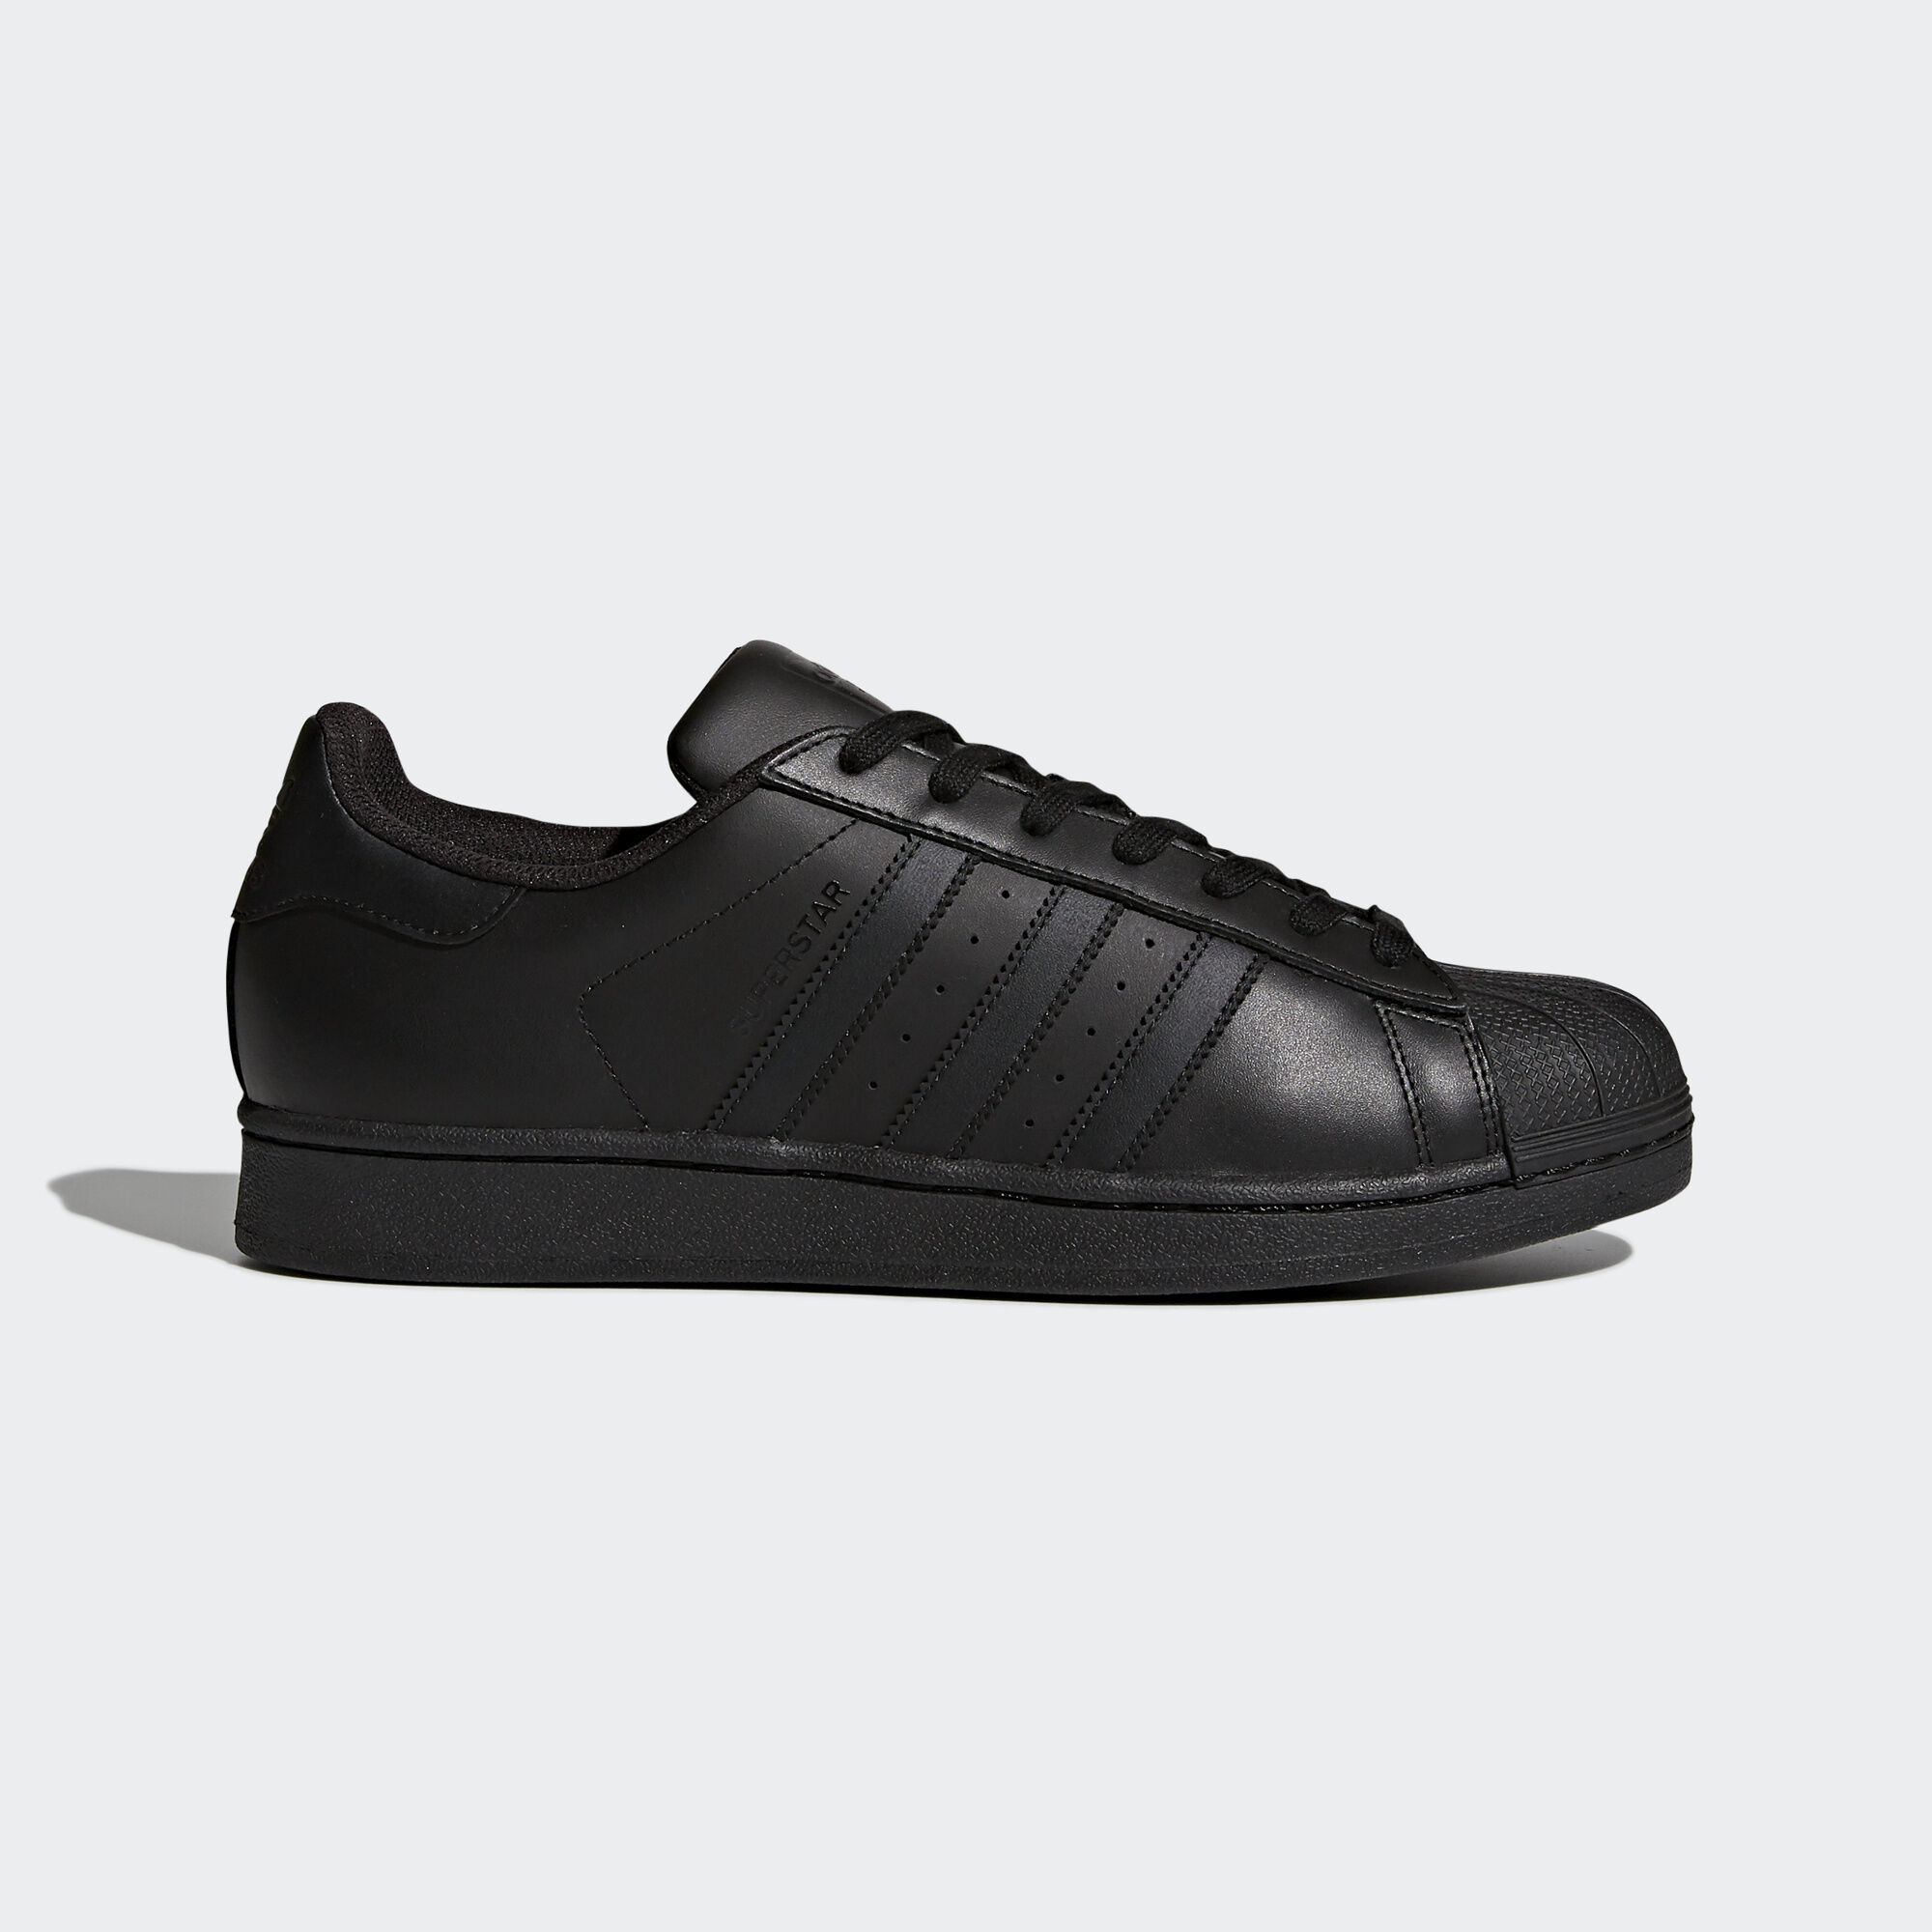 White Mountaineering x Cheap Adidas Super Star Slip On Sneaker Freaker